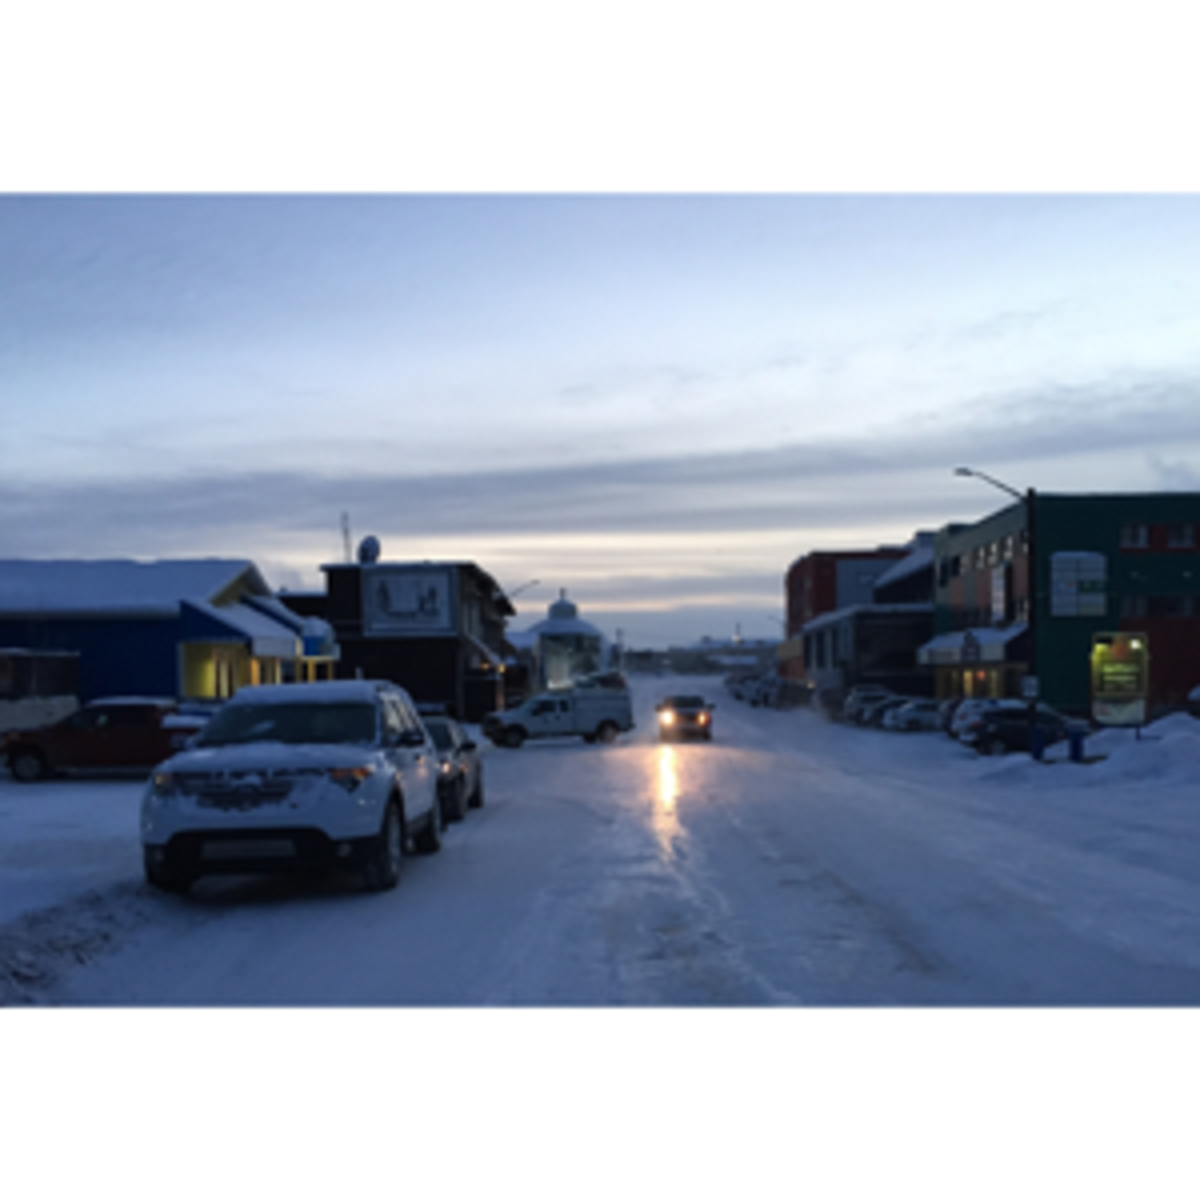 January weather in Inuvik